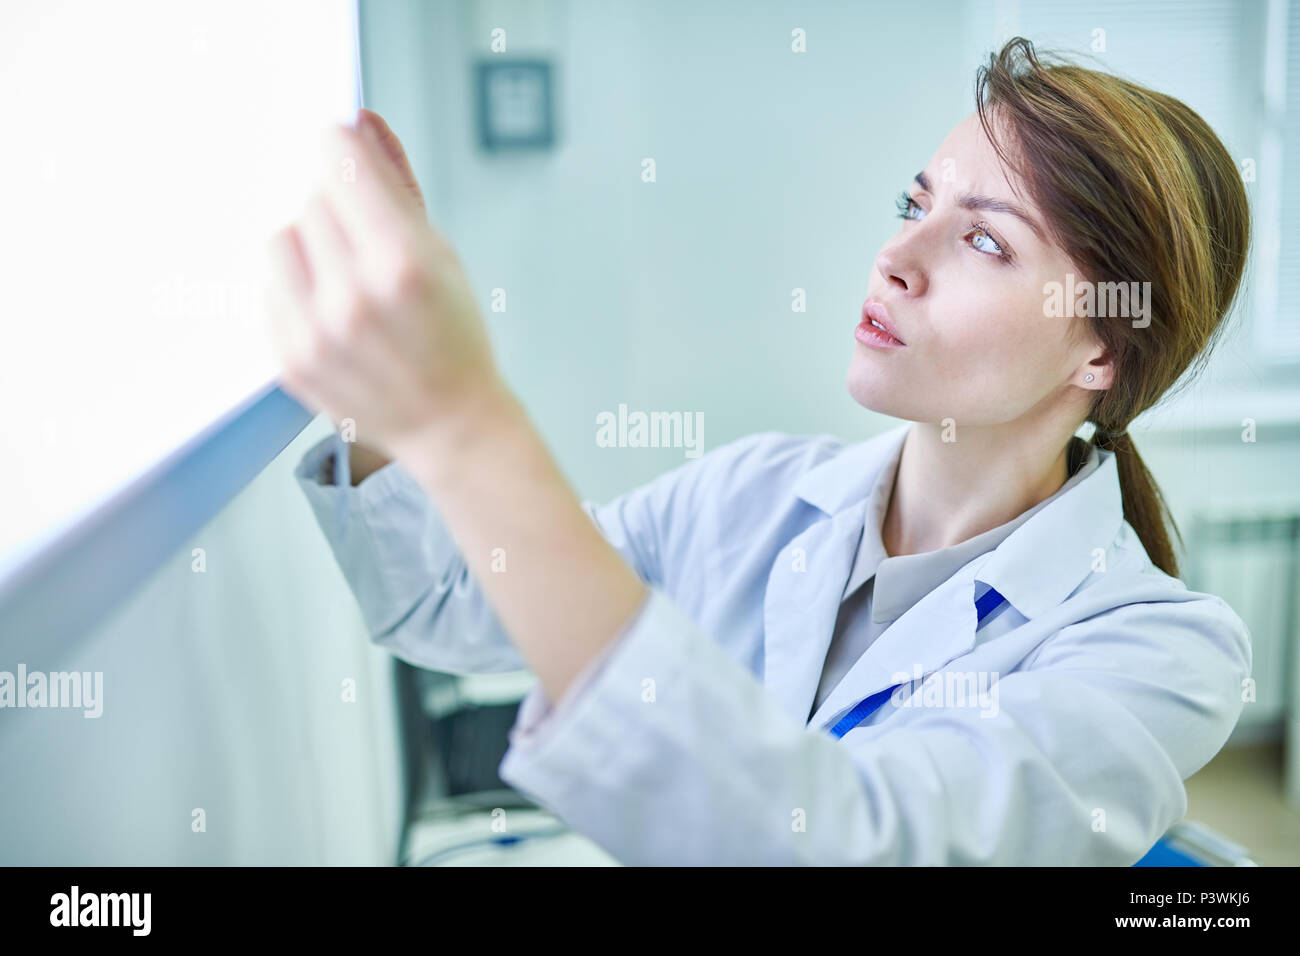 Doctor holding something and examining it - Stock Image